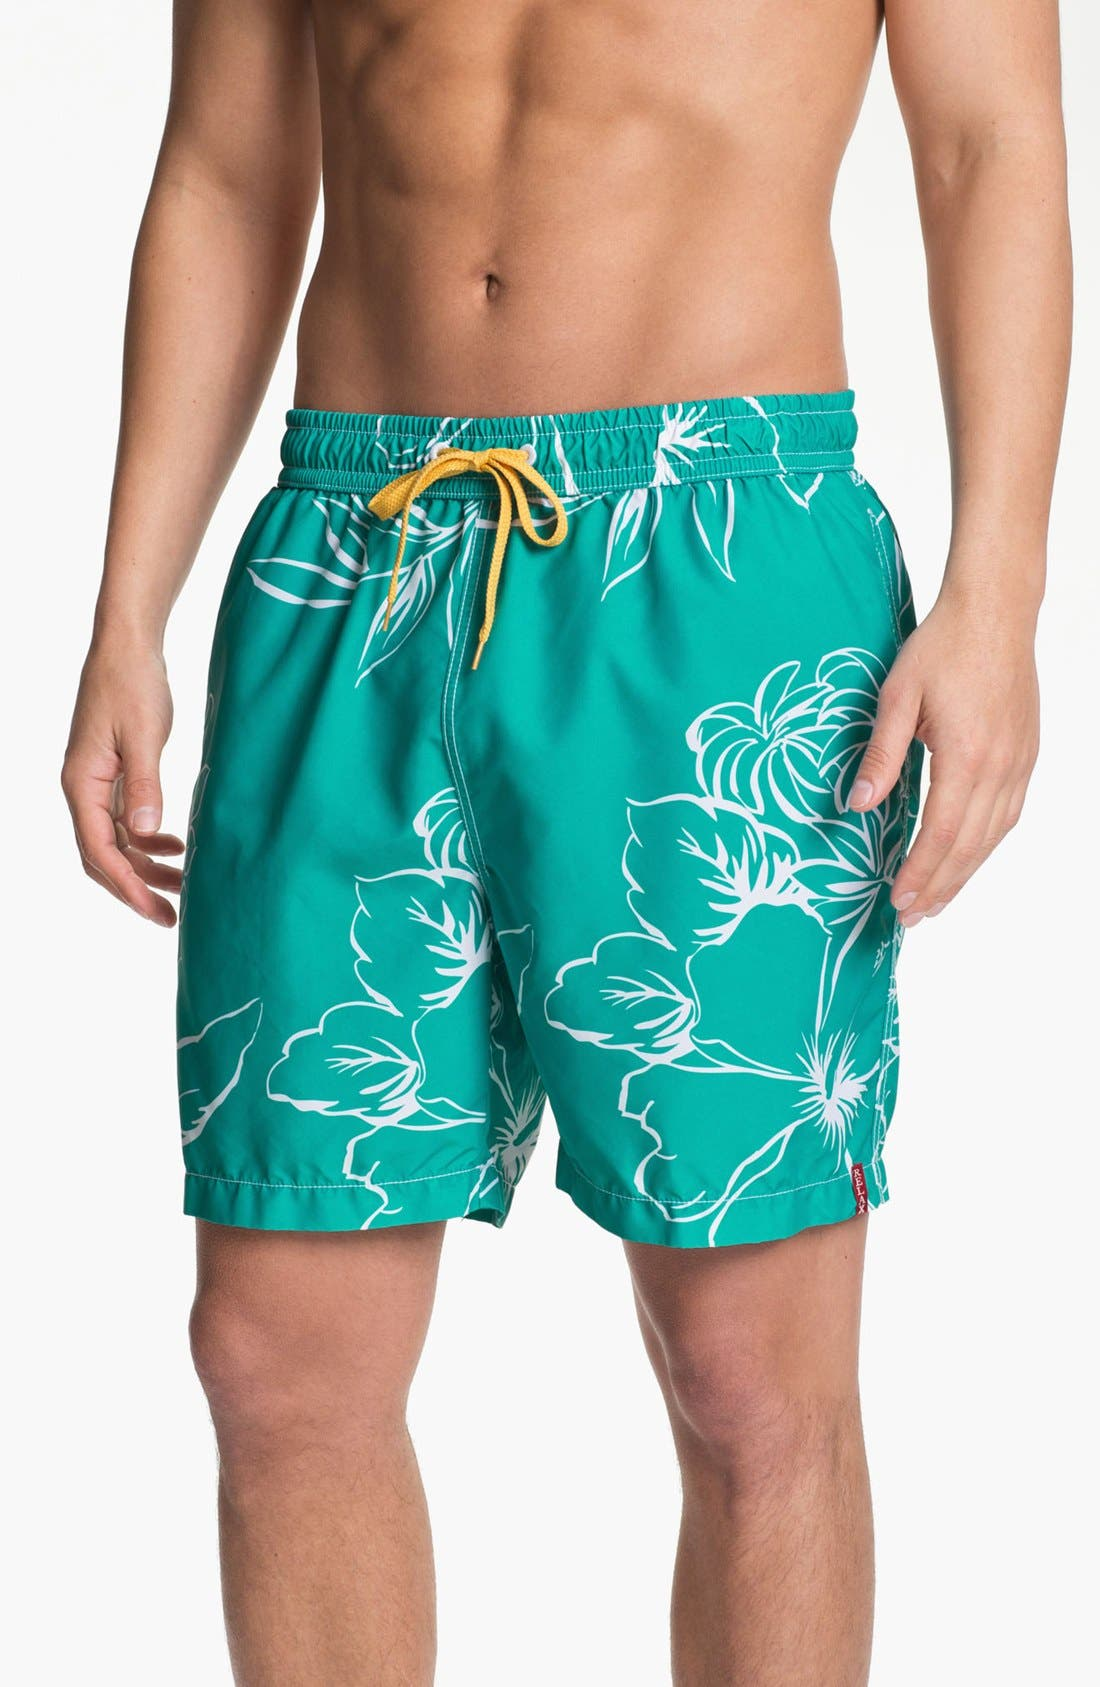 Alternate Image 1 Selected - Tommy Bahama 'Bloom Over Miami' Swim Trunks